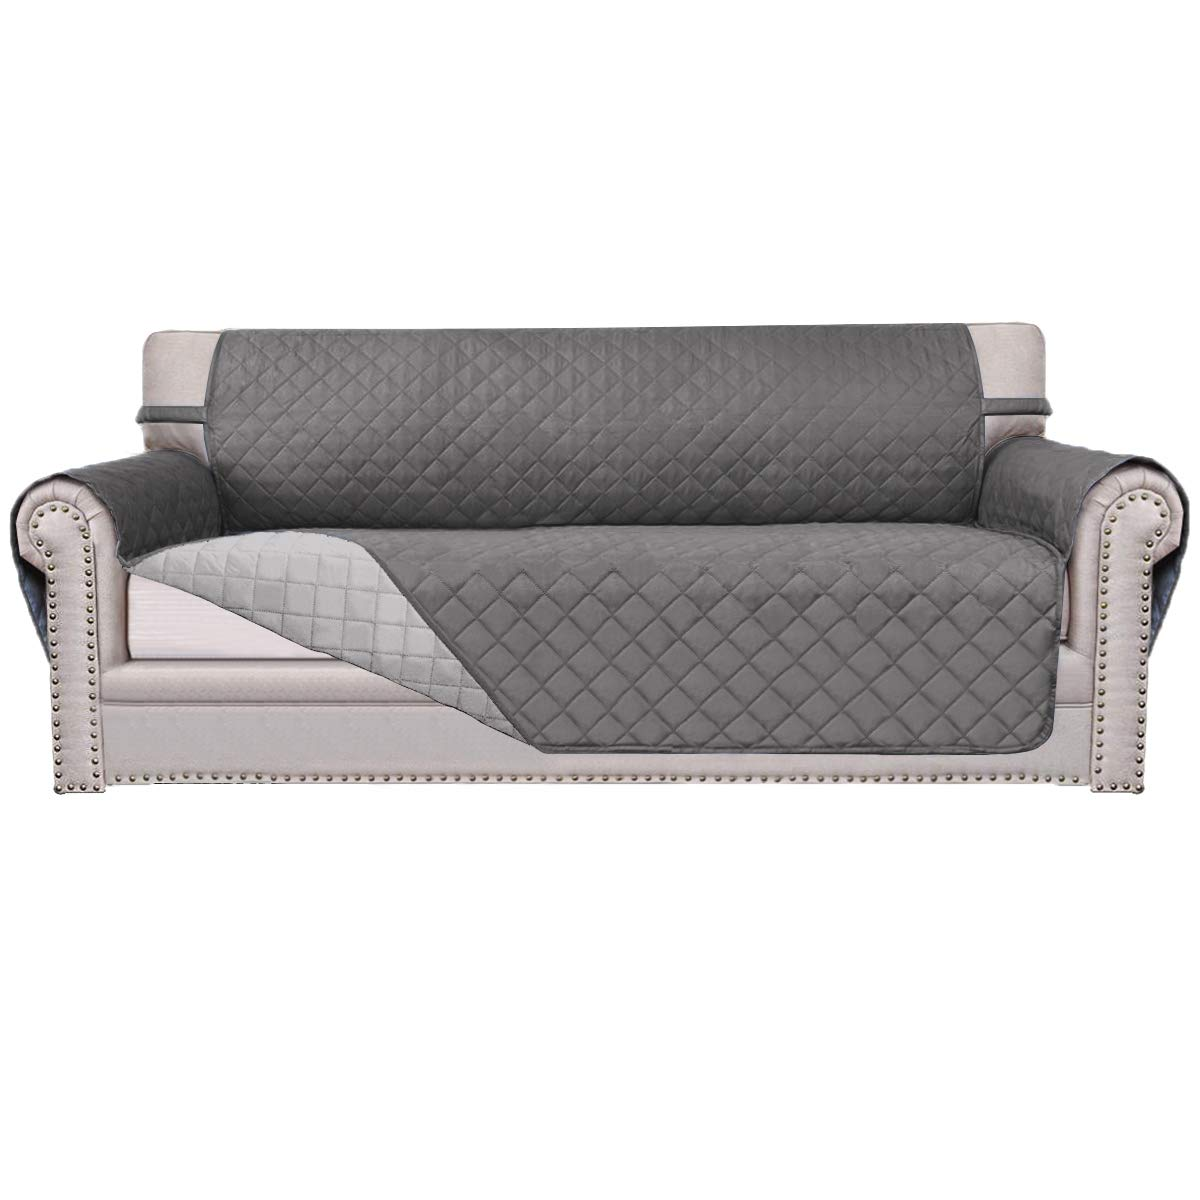 Easy-Going Sofa Covers, Slipcovers, Reversible Quilted Furniture Protector,Water Resistant,Improved Couch Shield with Elastic Straps,Anti-Slip Foams,Micro Fabric Pet Cover Sofa,Gray/Light Gray by Easy-Going